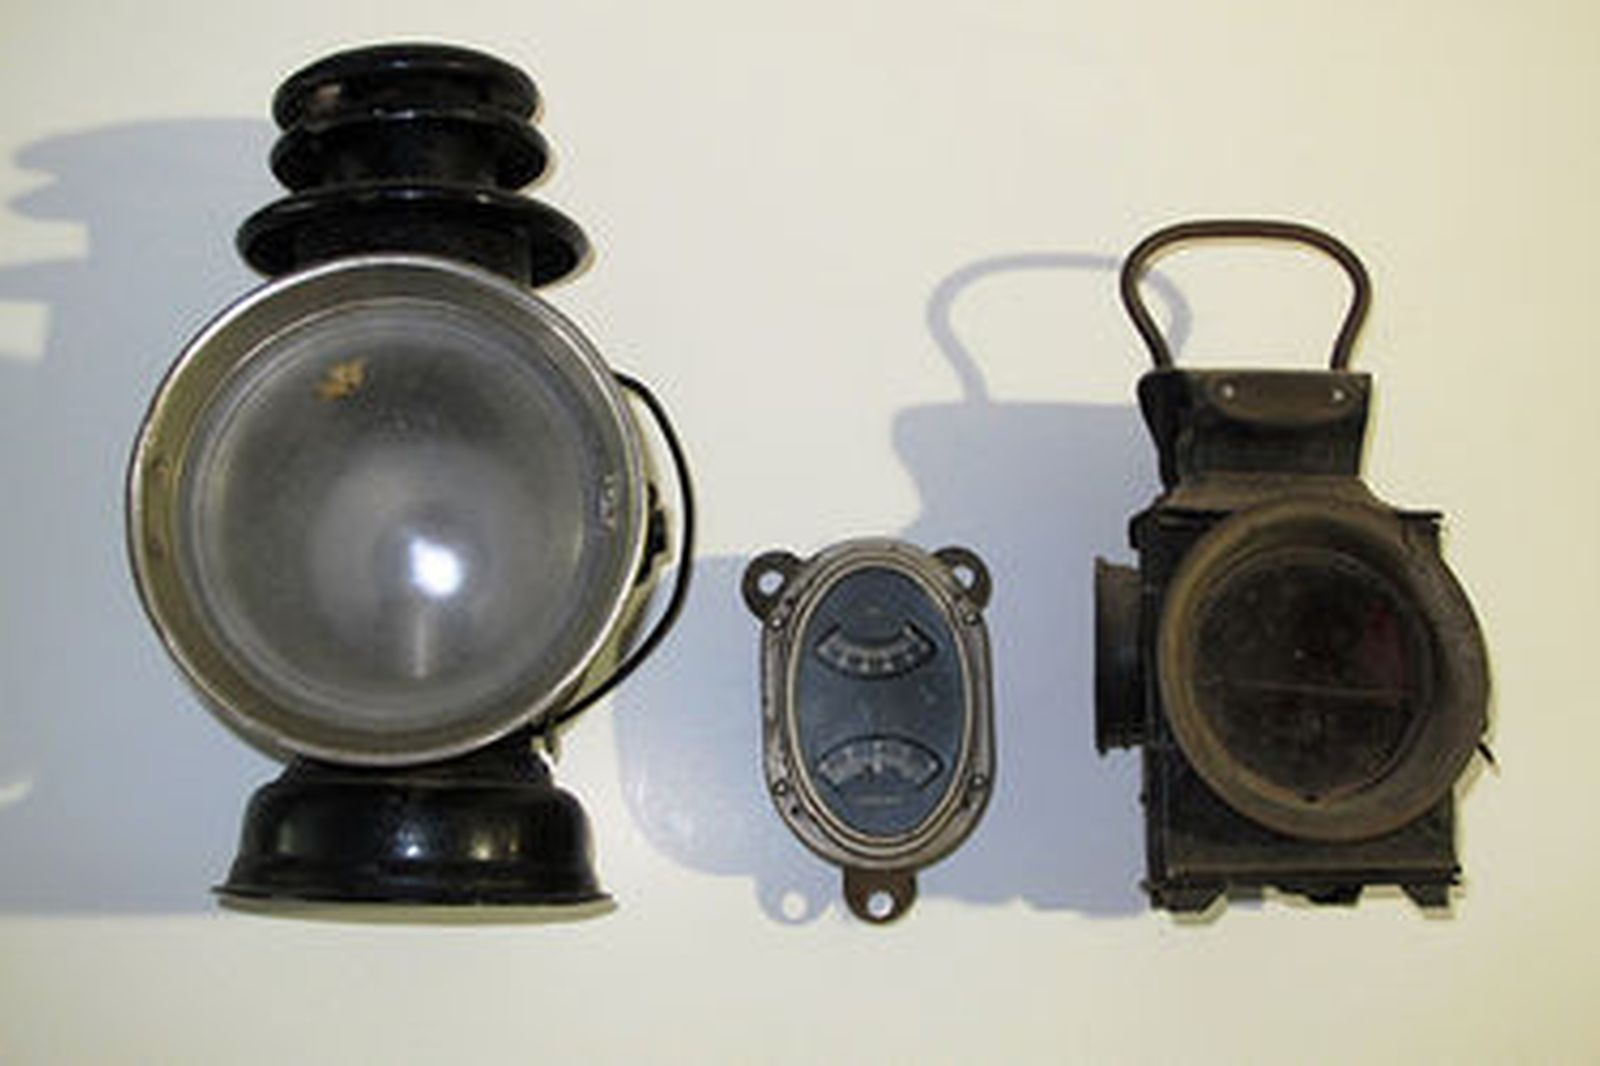 Collection - Early bonnet mascots, Motoring lamps, Packard Amp/Oil gauge (23 pieces total)